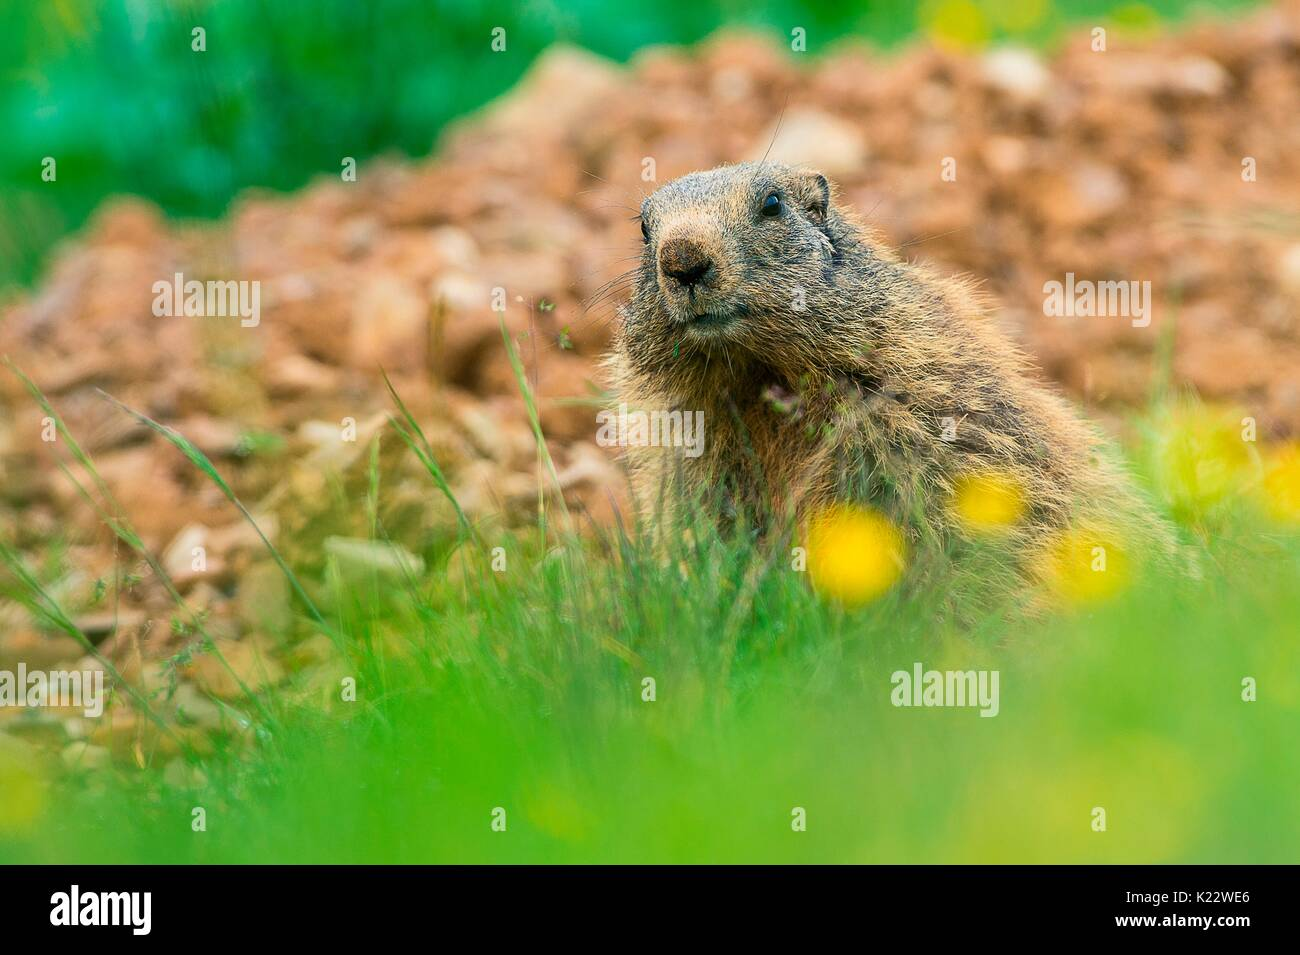 Gaver,Bagolino,Lombardy,Italy Portrait of a marmot sitting tripped in the plain of Gaver - Stock Image